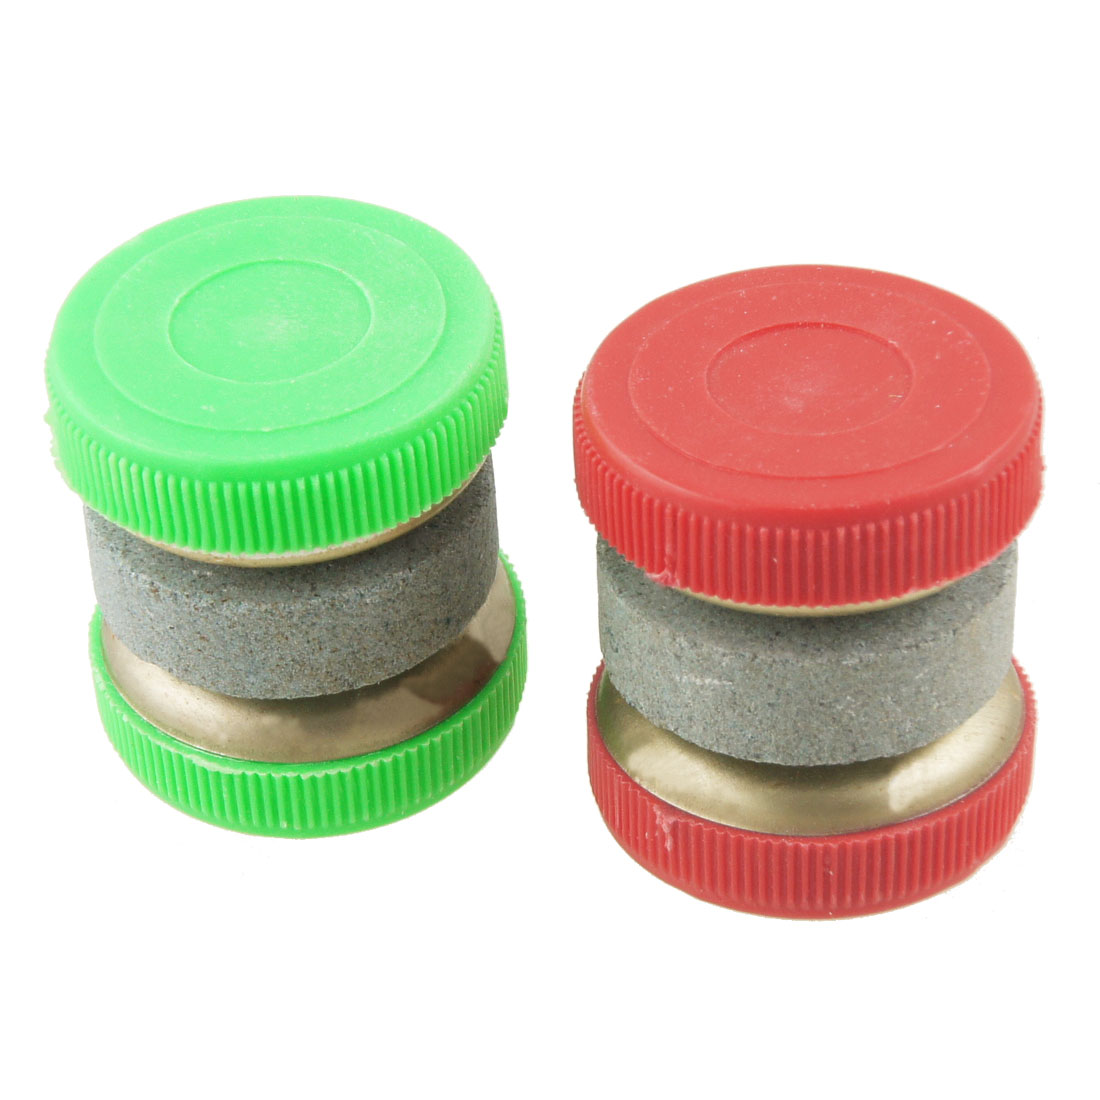 2 Pcs Red Green Grit Lapped Round Edge Milling Whetstone Abrader Sharpener